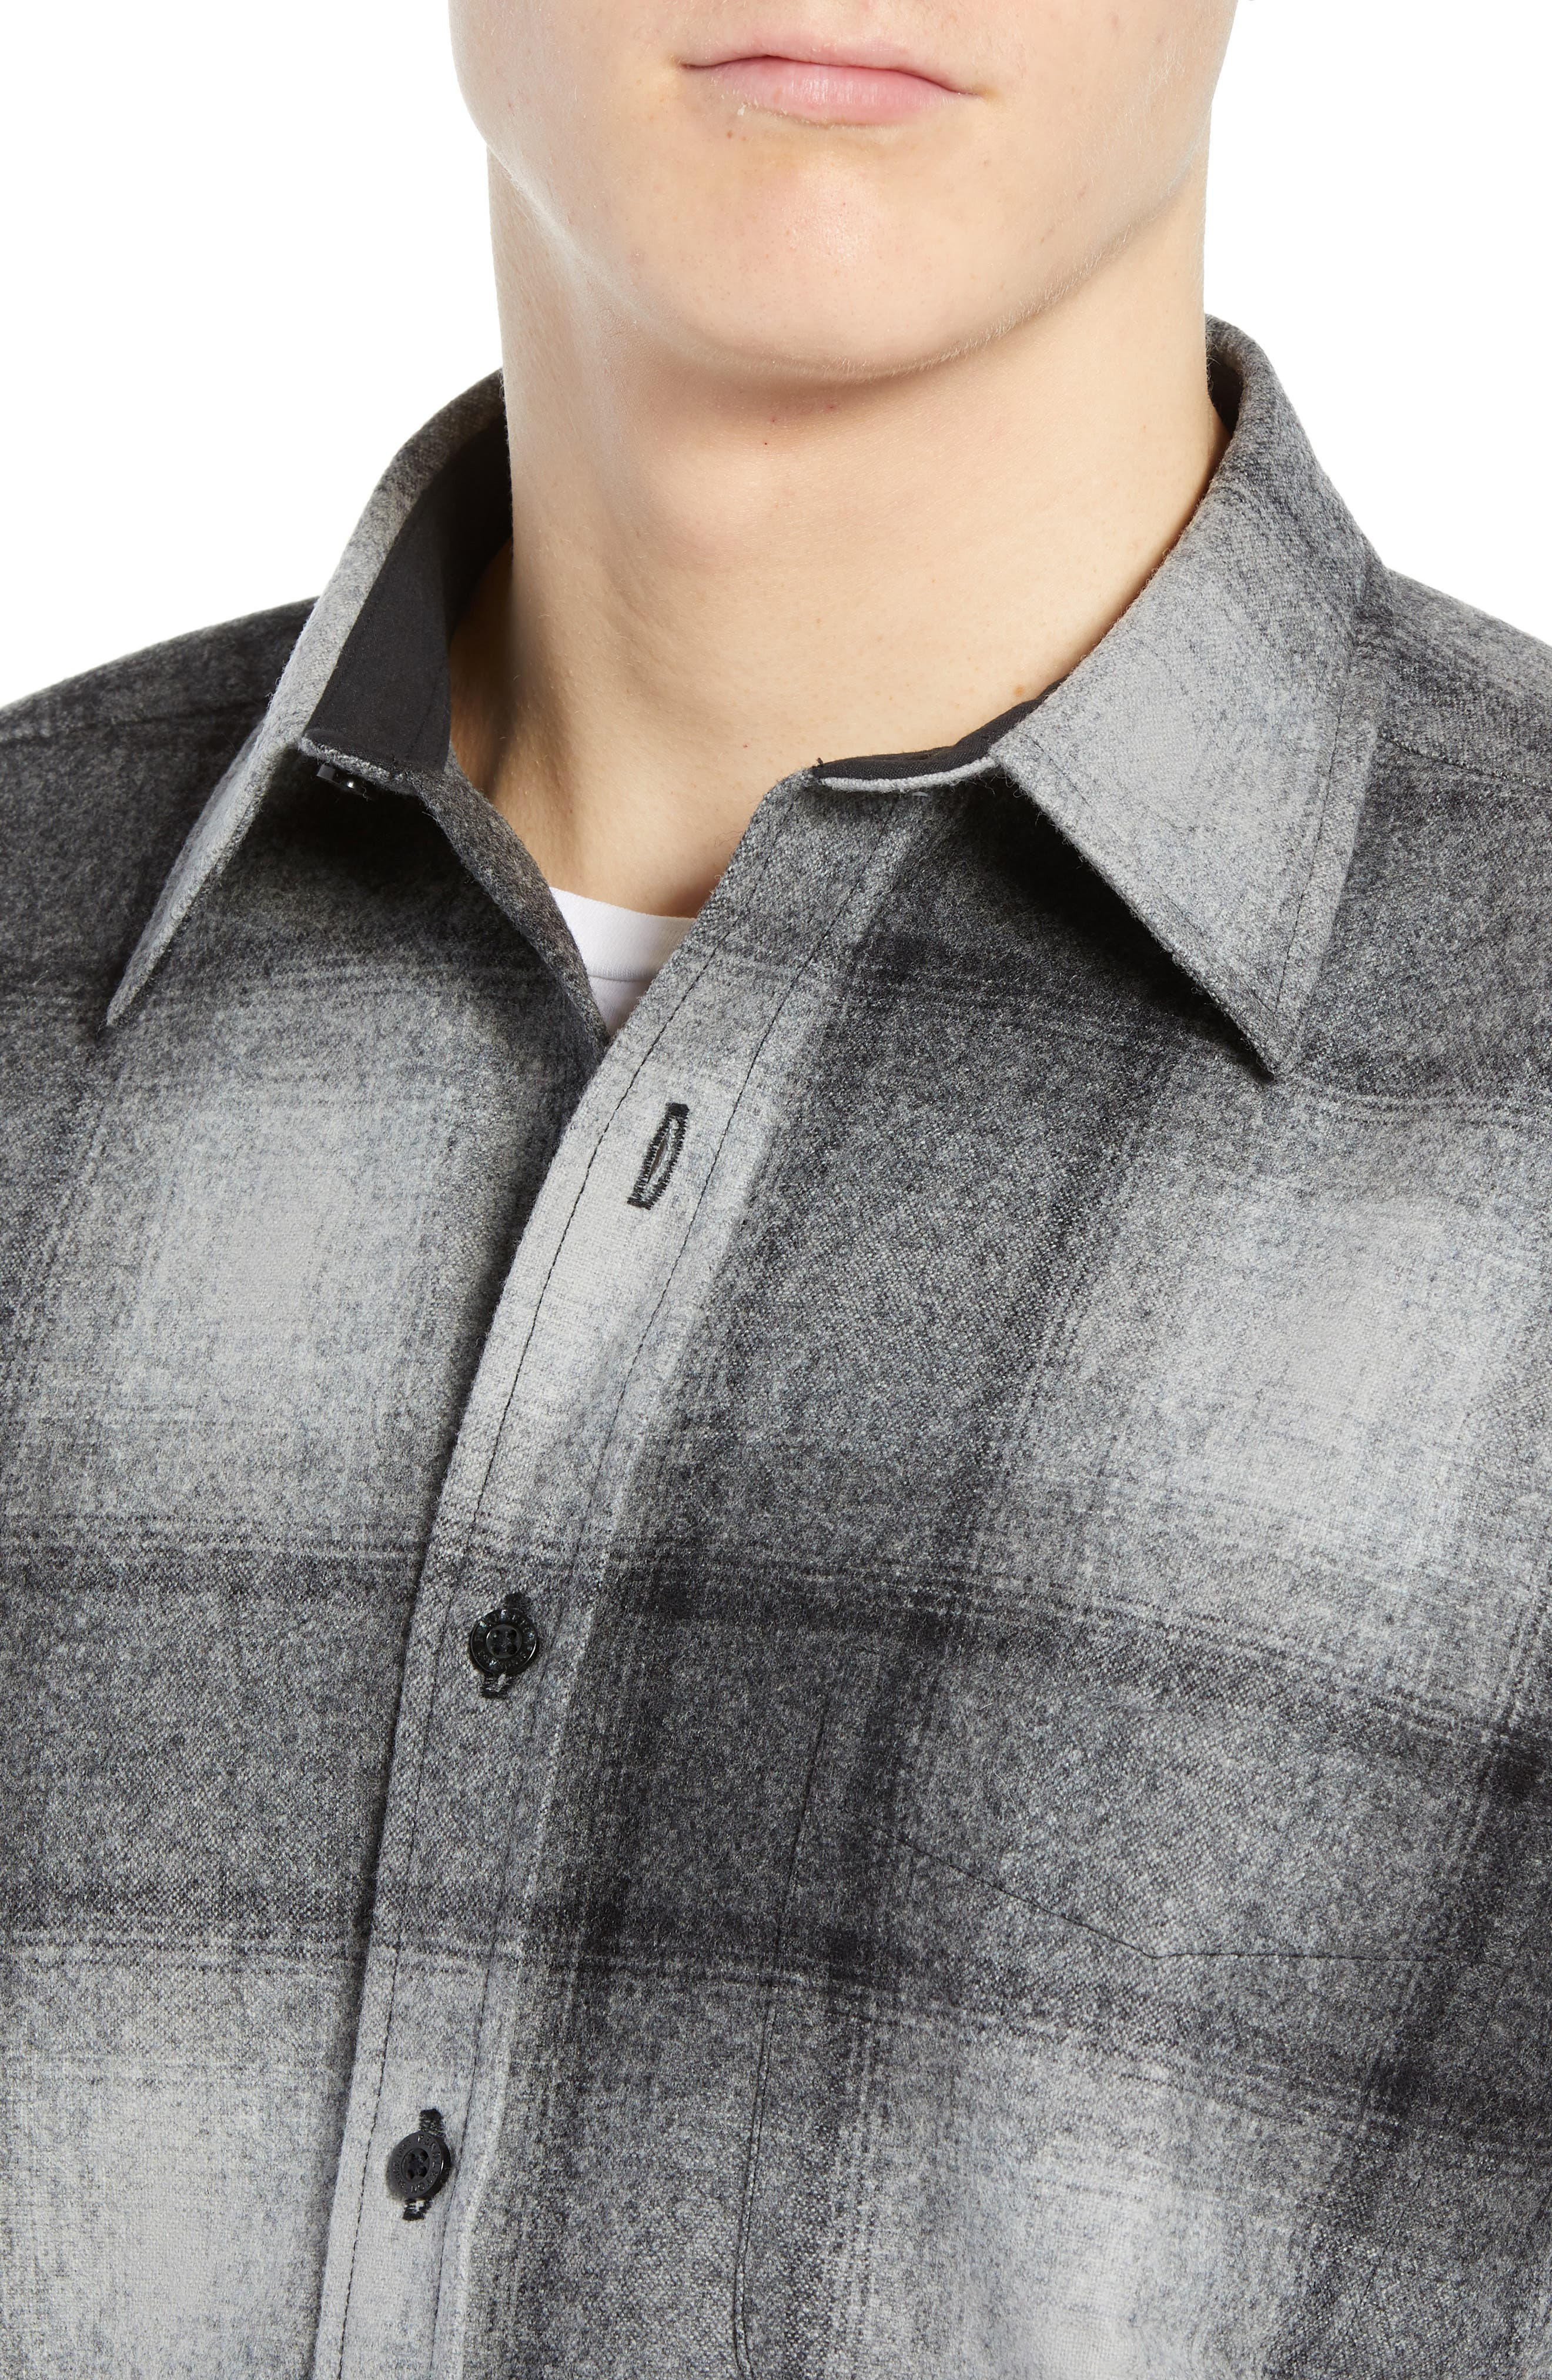 Lodge Wool Flannel Shirt,                             Alternate thumbnail 2, color,                             BLACK/ GREY MIX OMBRE